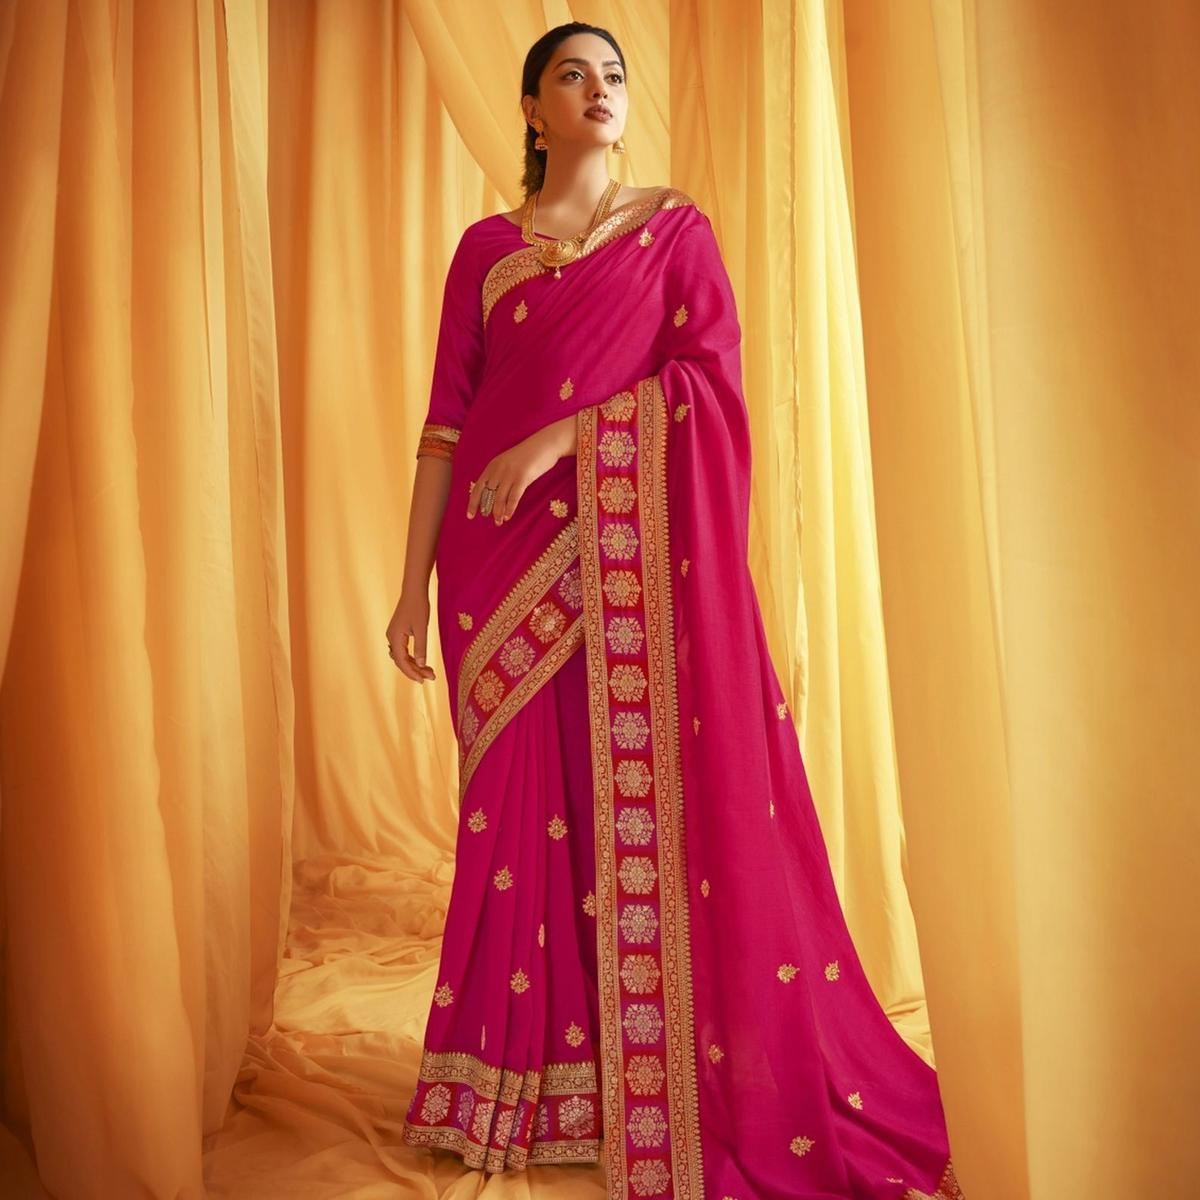 Triveni Pink Colored Chanderi Silk Embroidered Saree With Blouse Piece